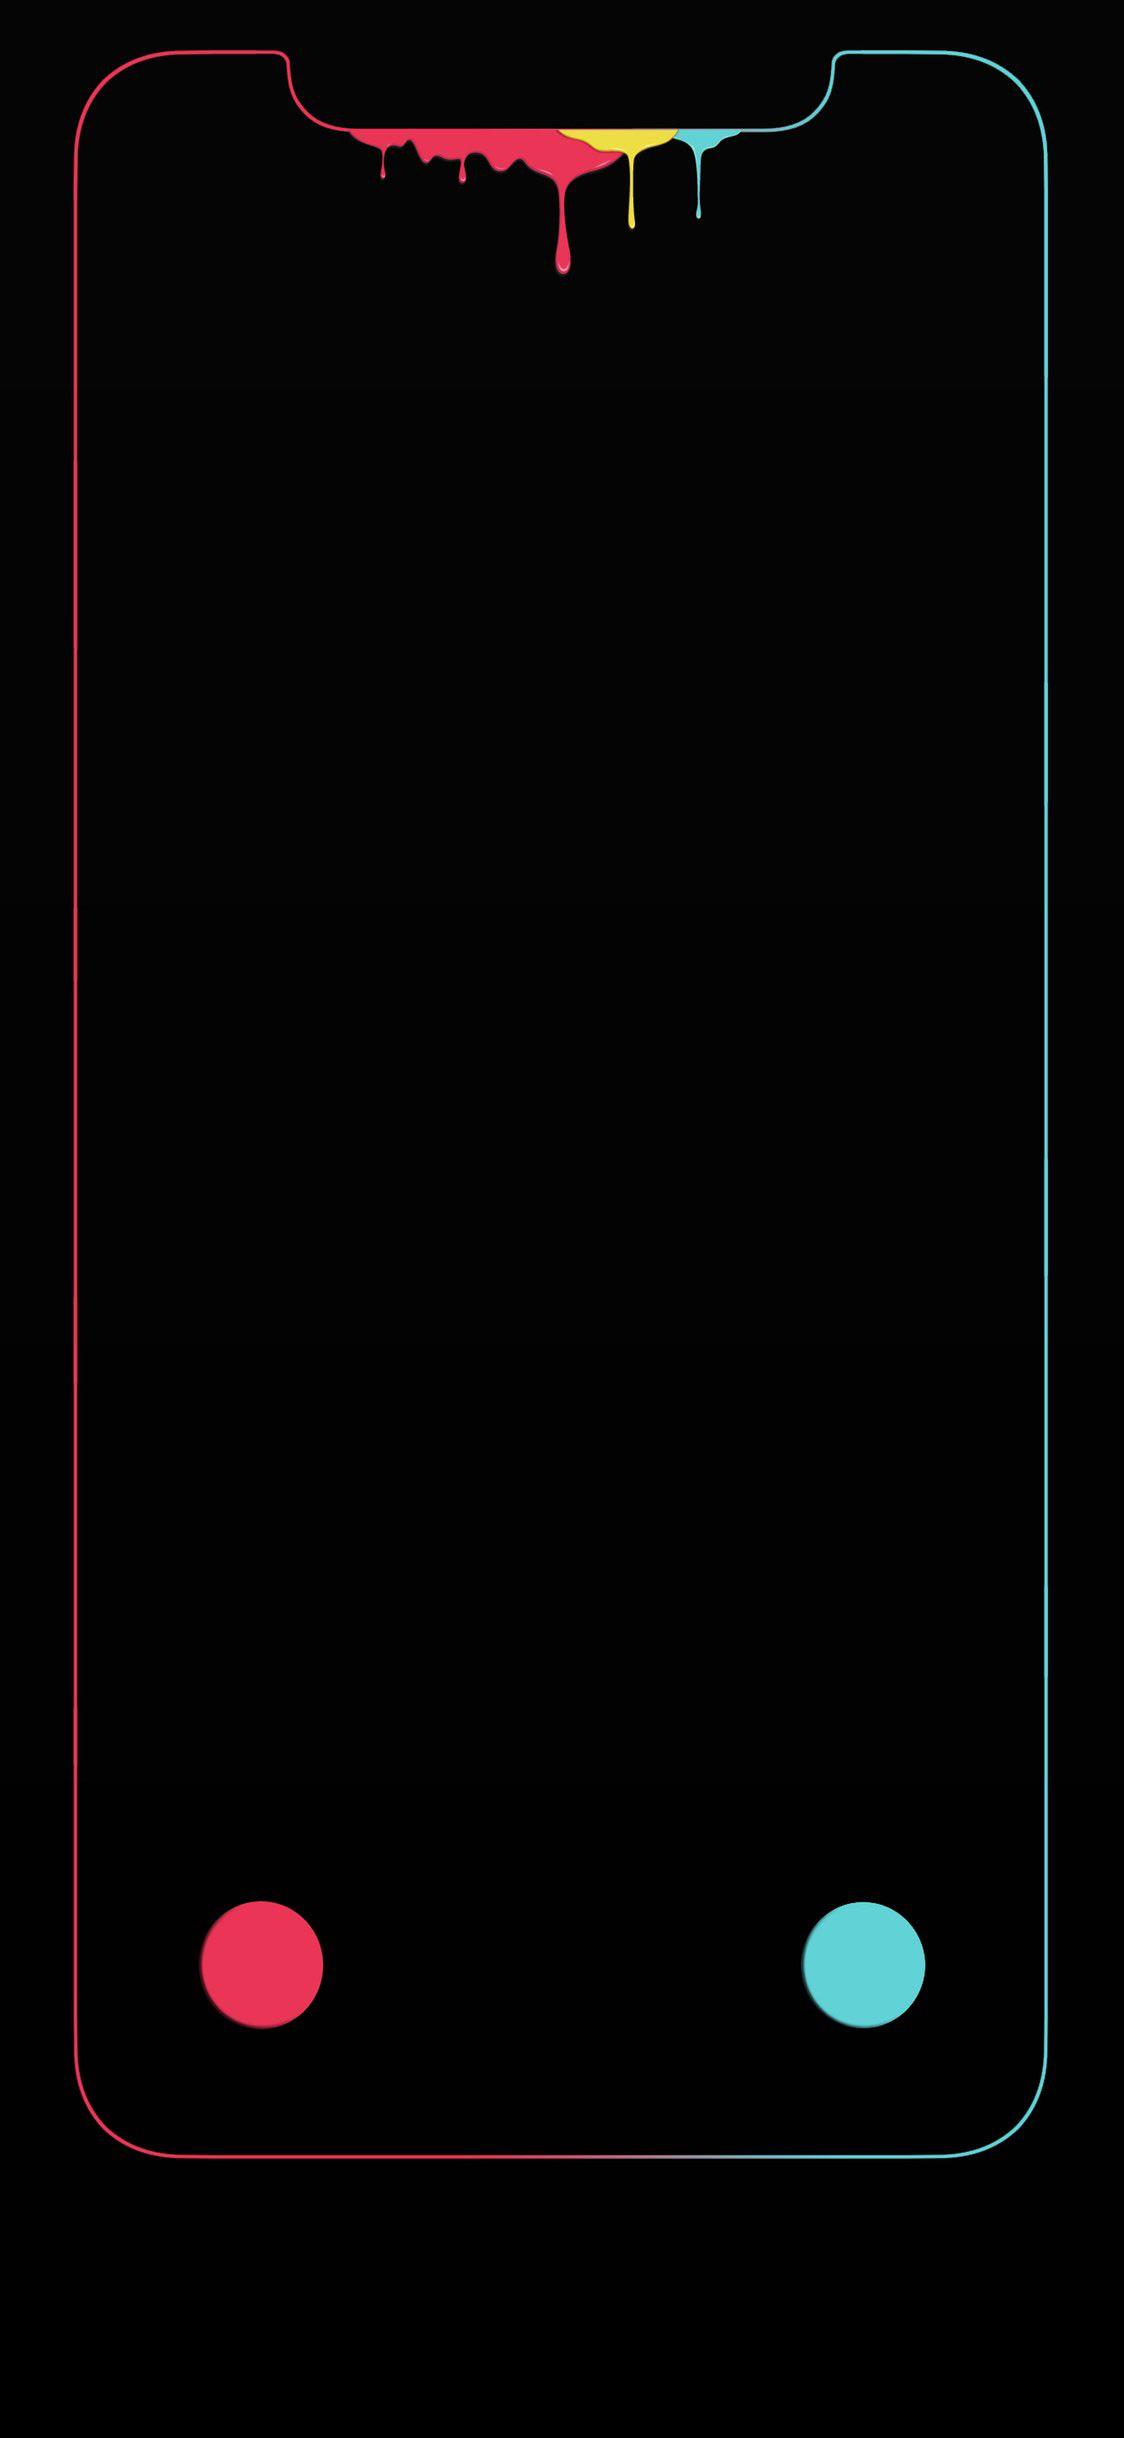 Coolest Iphone Xr Wallpapers